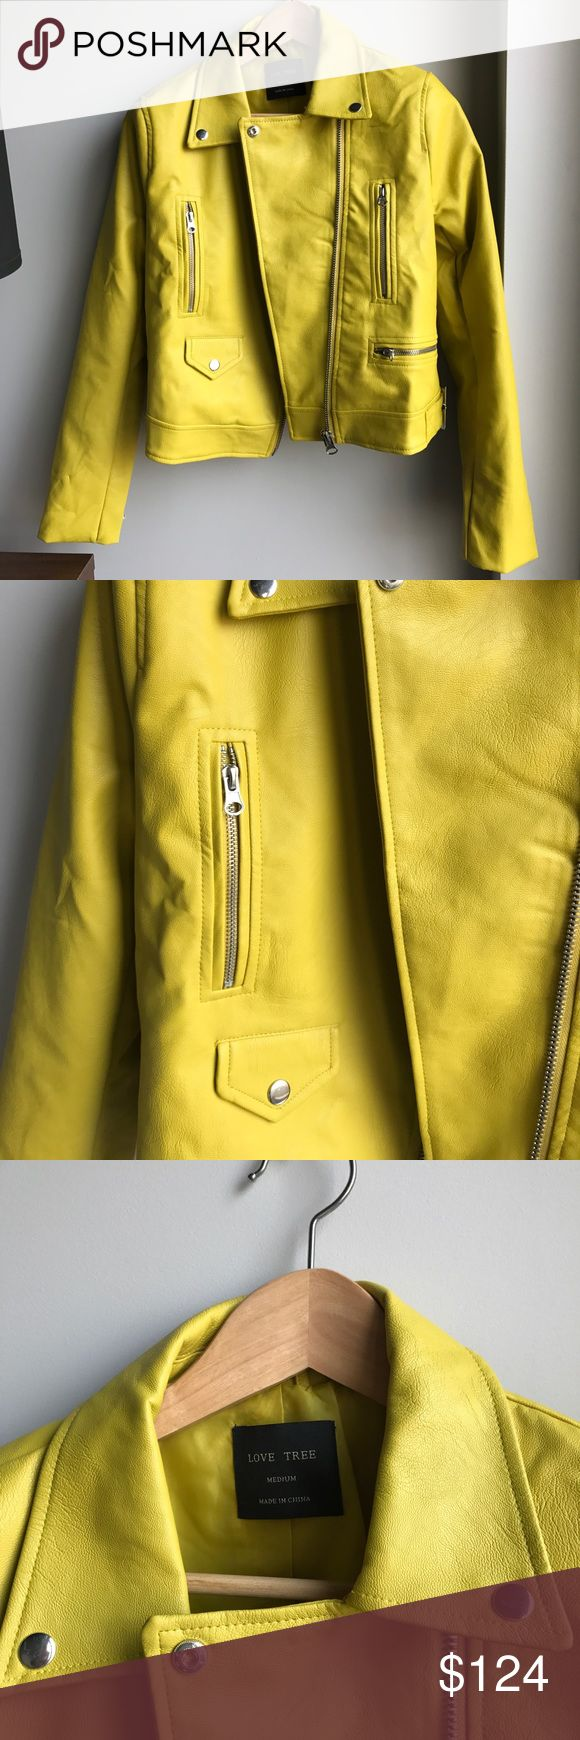 SUPER RARE!! MOTO JACKET / FAUX LEATHER JACKET NEW Yellow... almost neon green. Have not added any filters so you can see how incredible this color is. BRAND NEW!! But i did remove the tags. A show stopping piece, you will get so many questions on where you got it. Truly one of a kind. I would wear it with an all black outfit and the jacket as a pop of color on top. Also would look amazing with skinny jeans and a white top. Urban Outfitters Jackets & Coats Pea Coats